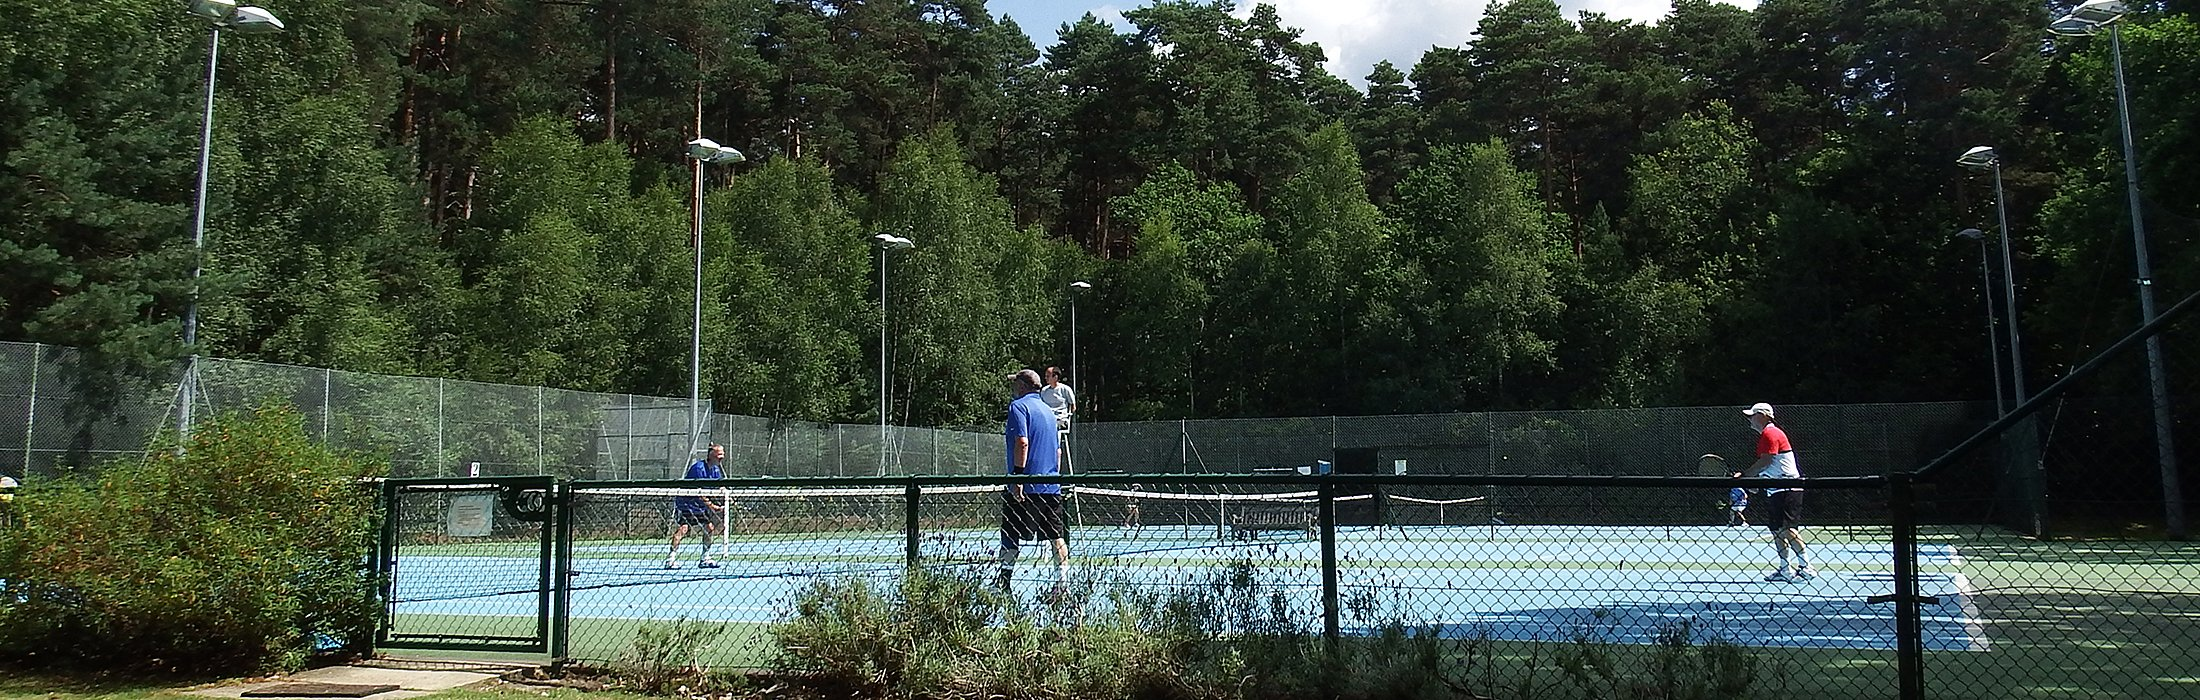 About Crowthorne Tennis Club and the village of Crowthorne, Berkshire